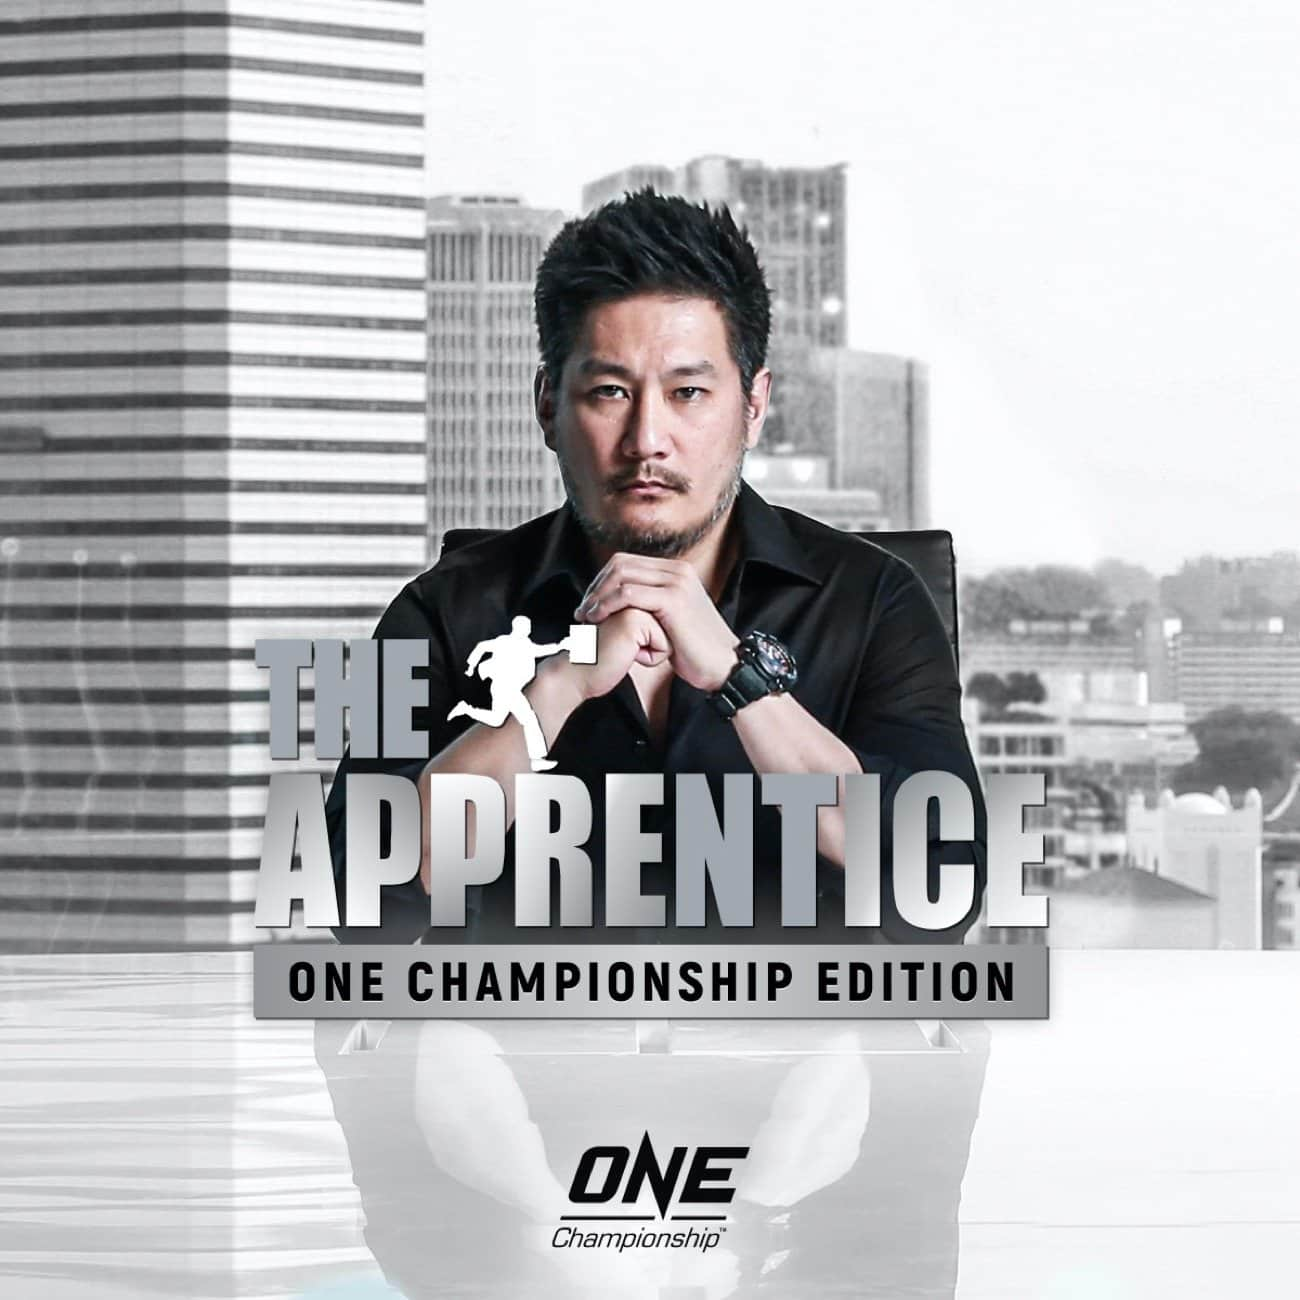 The largest global sports media property in Asian history, ONE Championship™ (ONE), today has announced the launch of 'The Apprentice: ONE Championship Edition' under license from MGM Television.